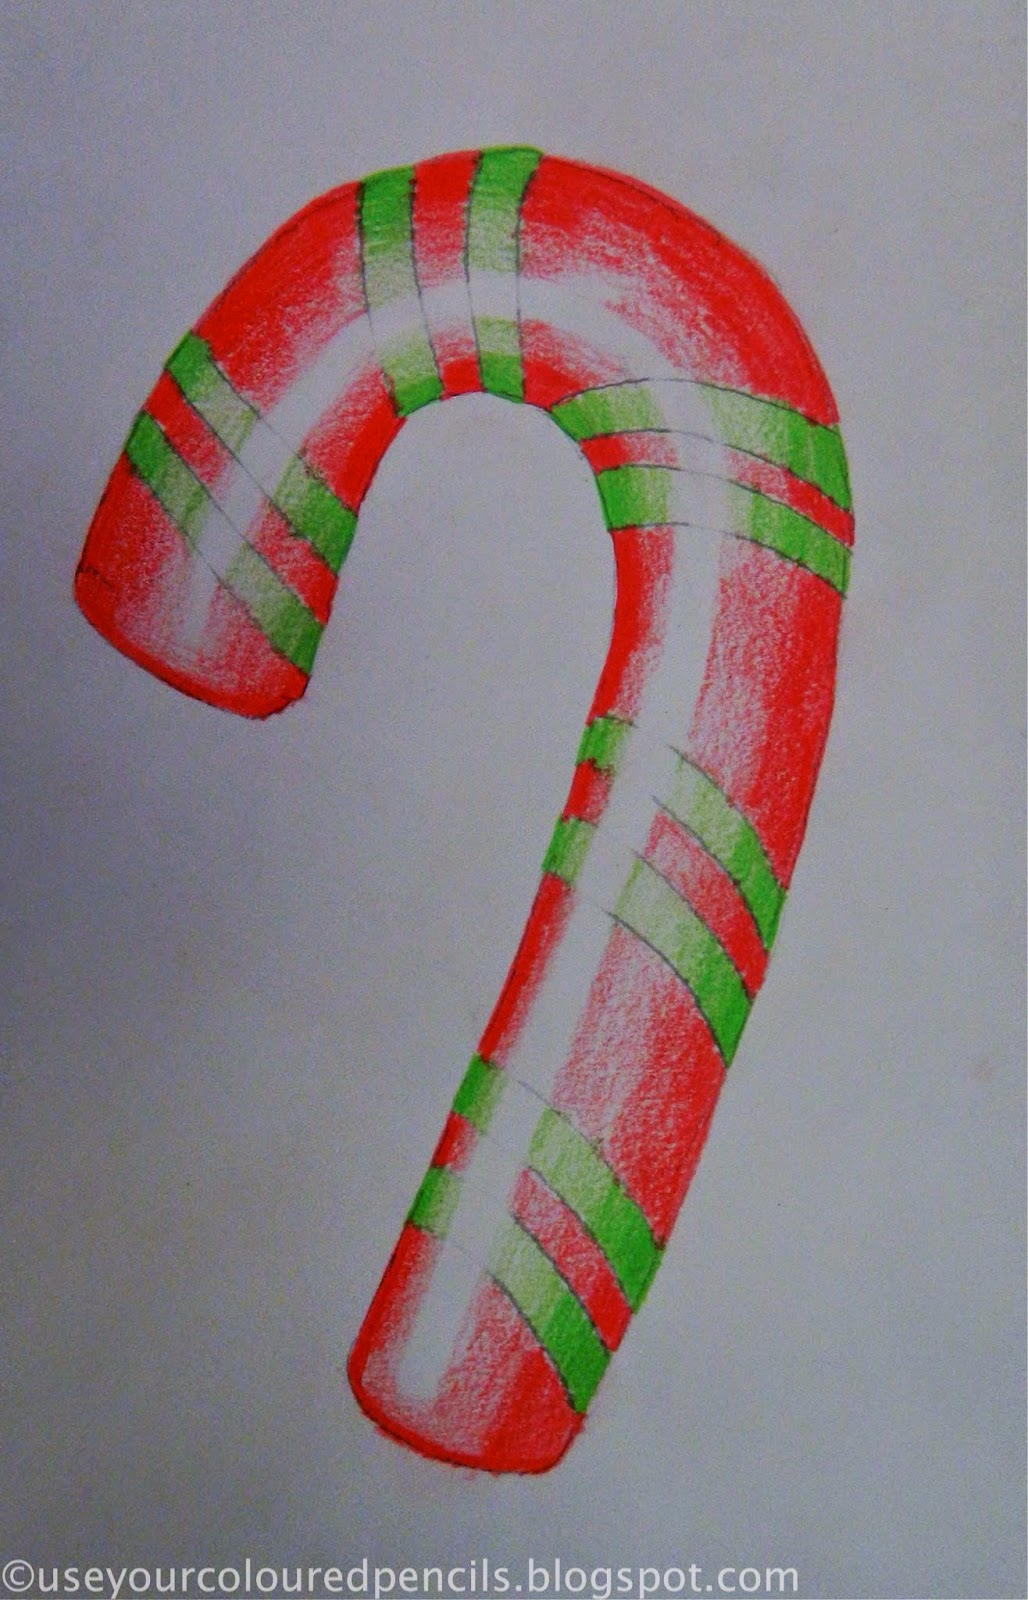 Candy Cane Hearts: Use Your Coloured Pencils: Candy Cane Drawings